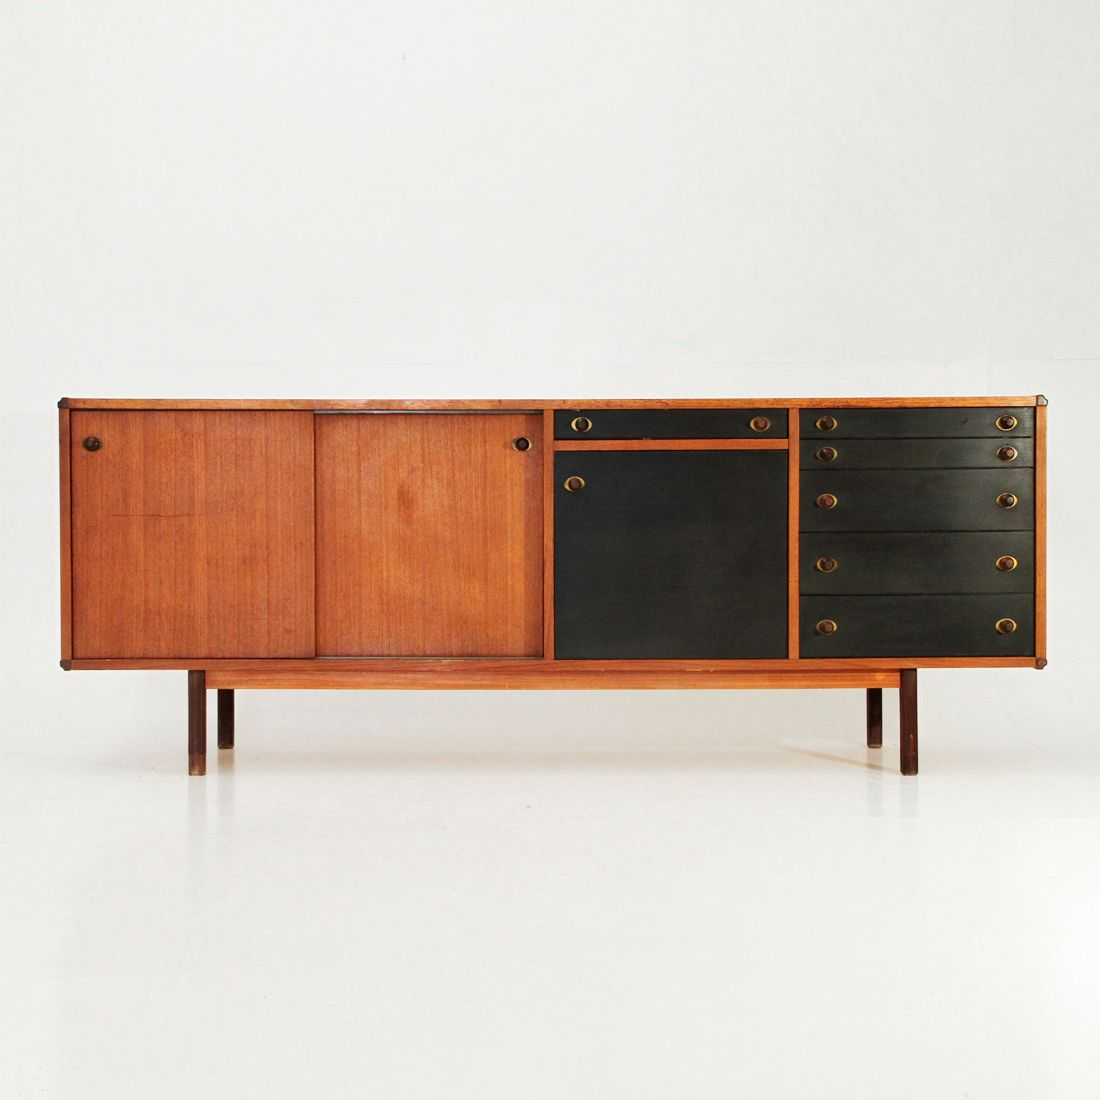 modern sideboard rules with Italian Sideboard With Wood Brass Knobs 1960s 1 on Media Center Design Ideas Living Room also Round 9 Feature Match Dave Williams Usa Vs Mike Pustilnik Usa 2015 as well Mid Century Modern Italian Sideboard 1 as well 474989091931804613 further Mid Century Modern Sideboard From Paul Mccobb 1960s.